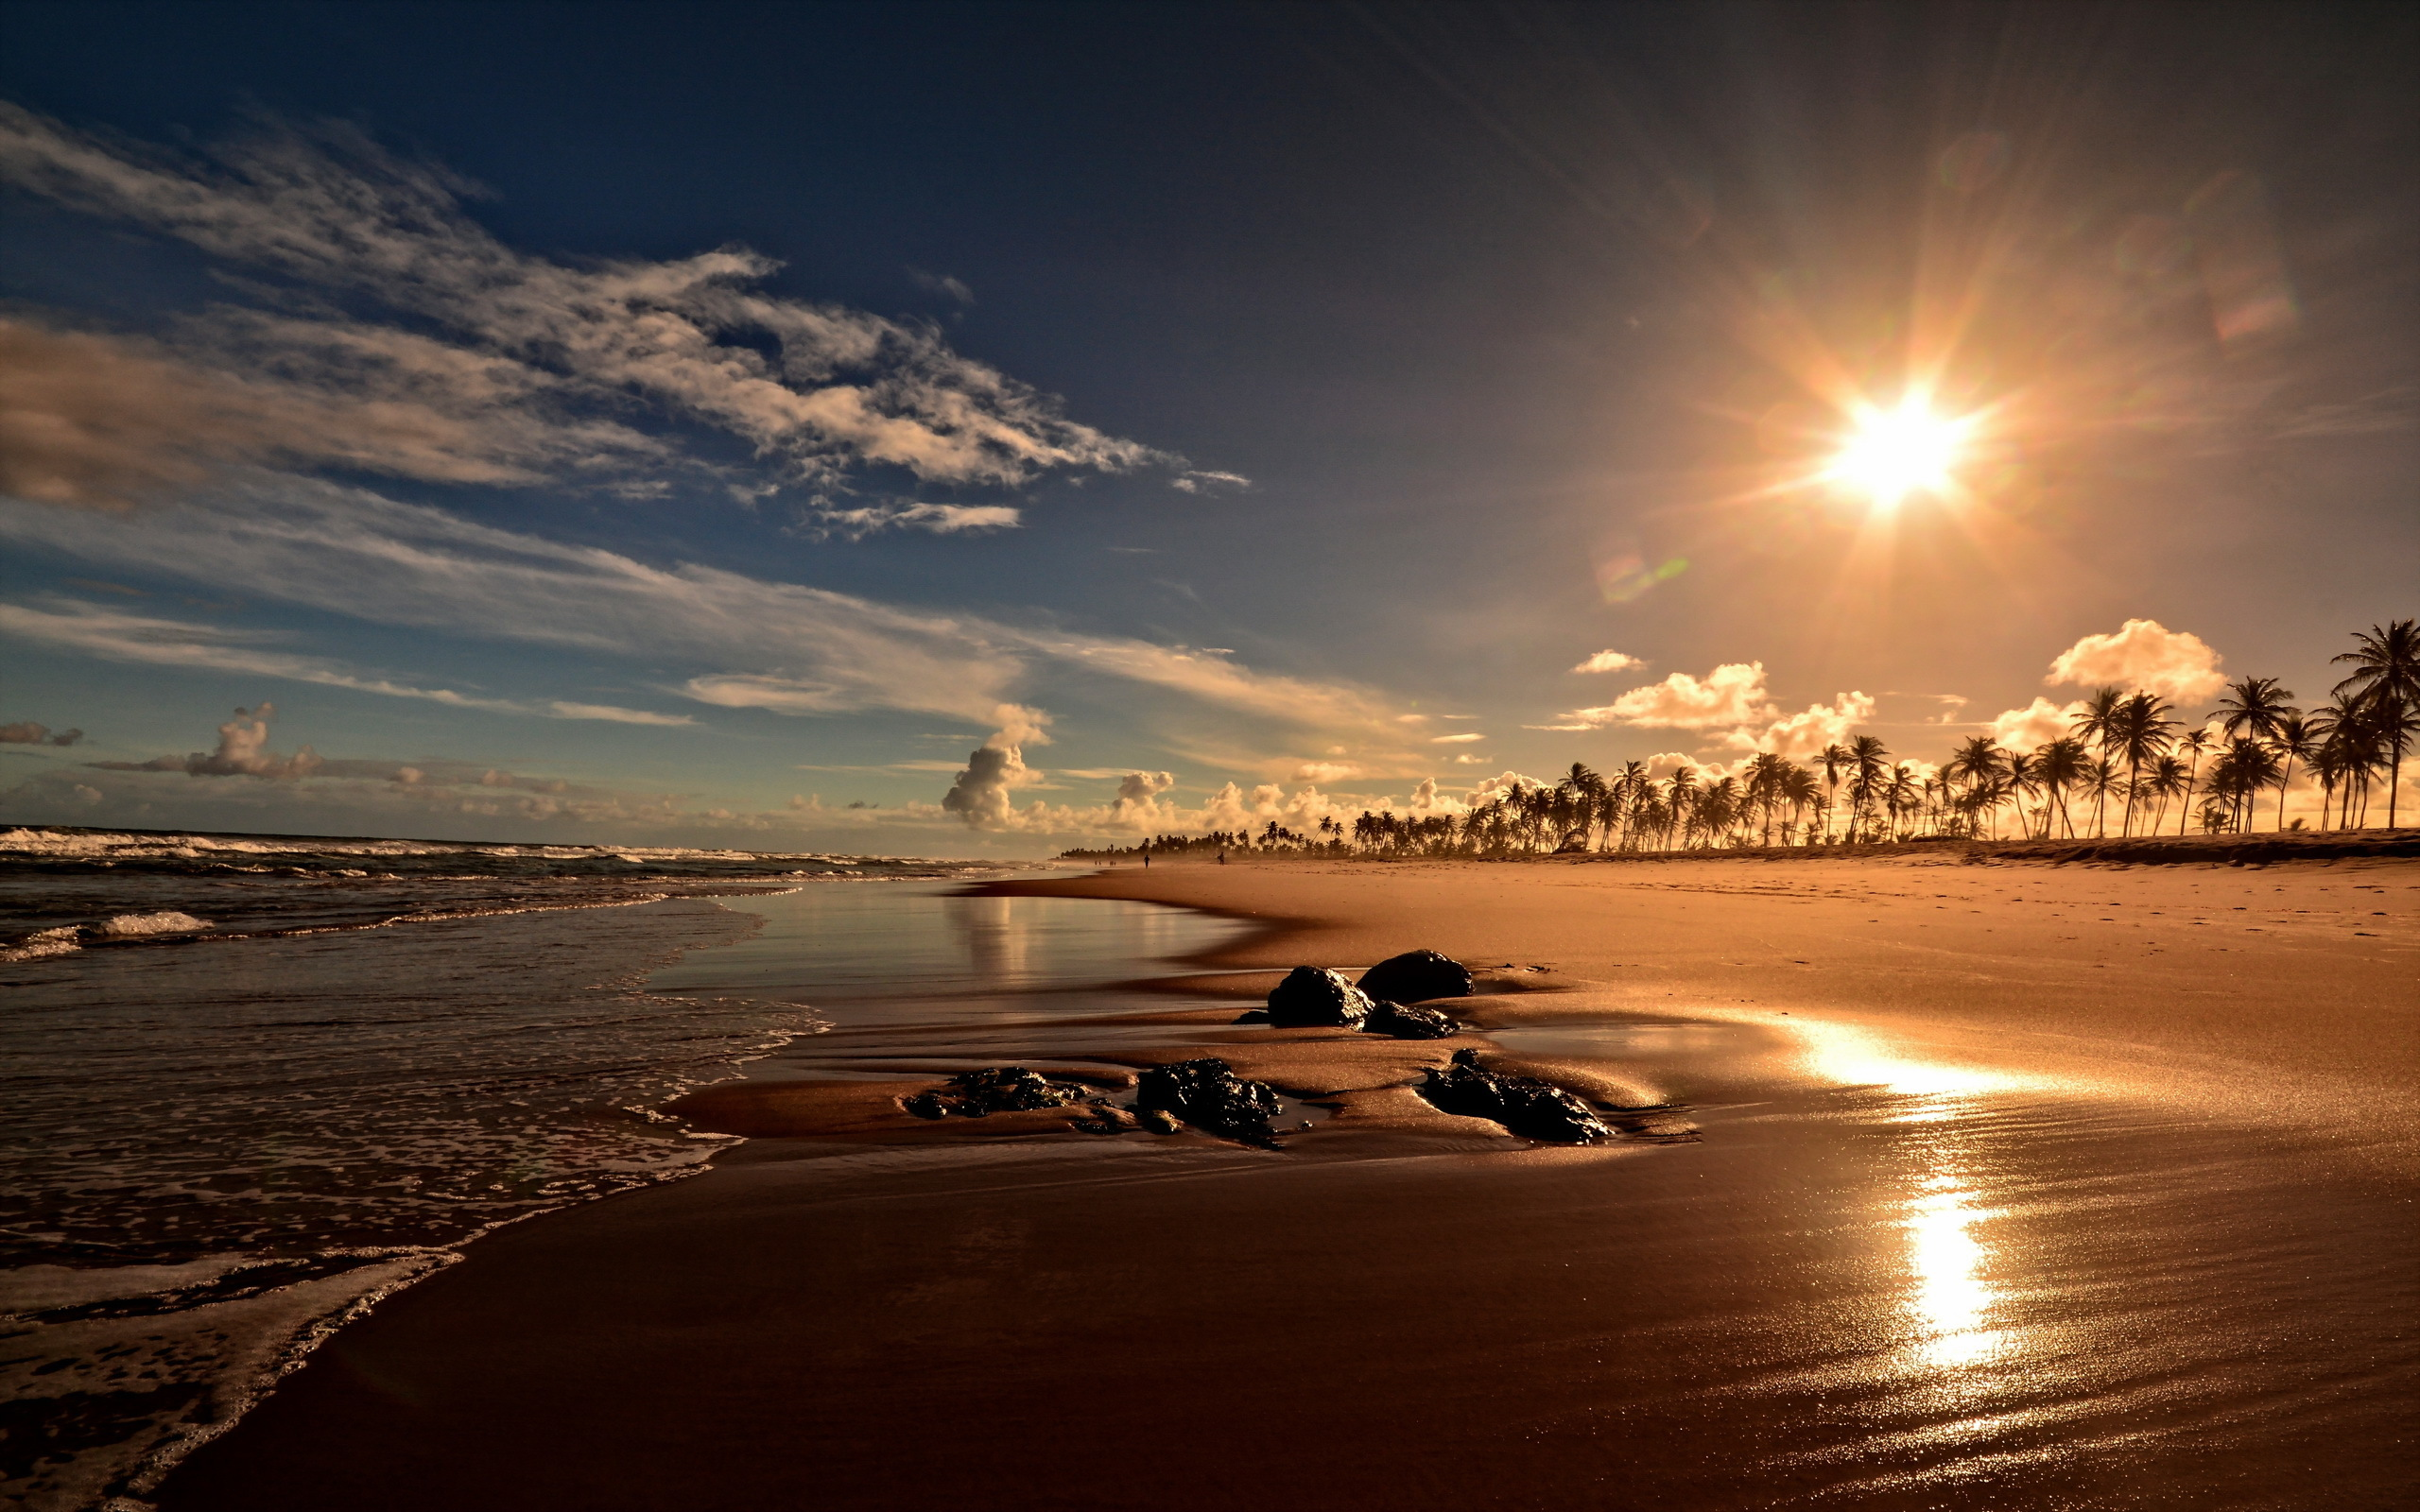 sunrise pictures on the beach